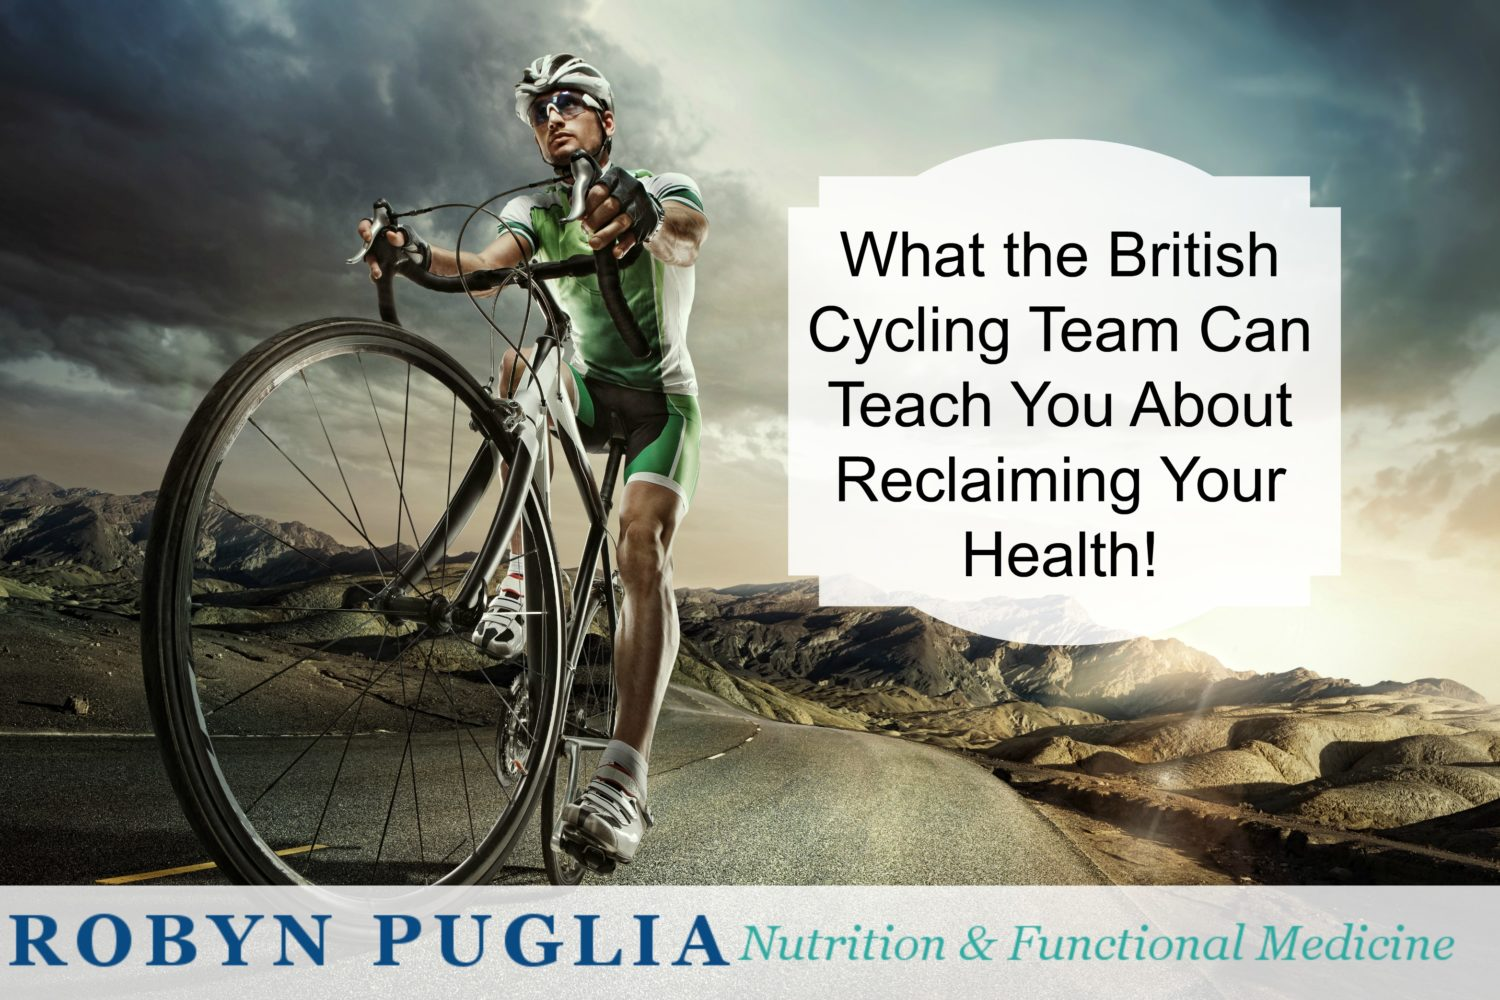 What the British cycling Team can teach you about reclaiming your health